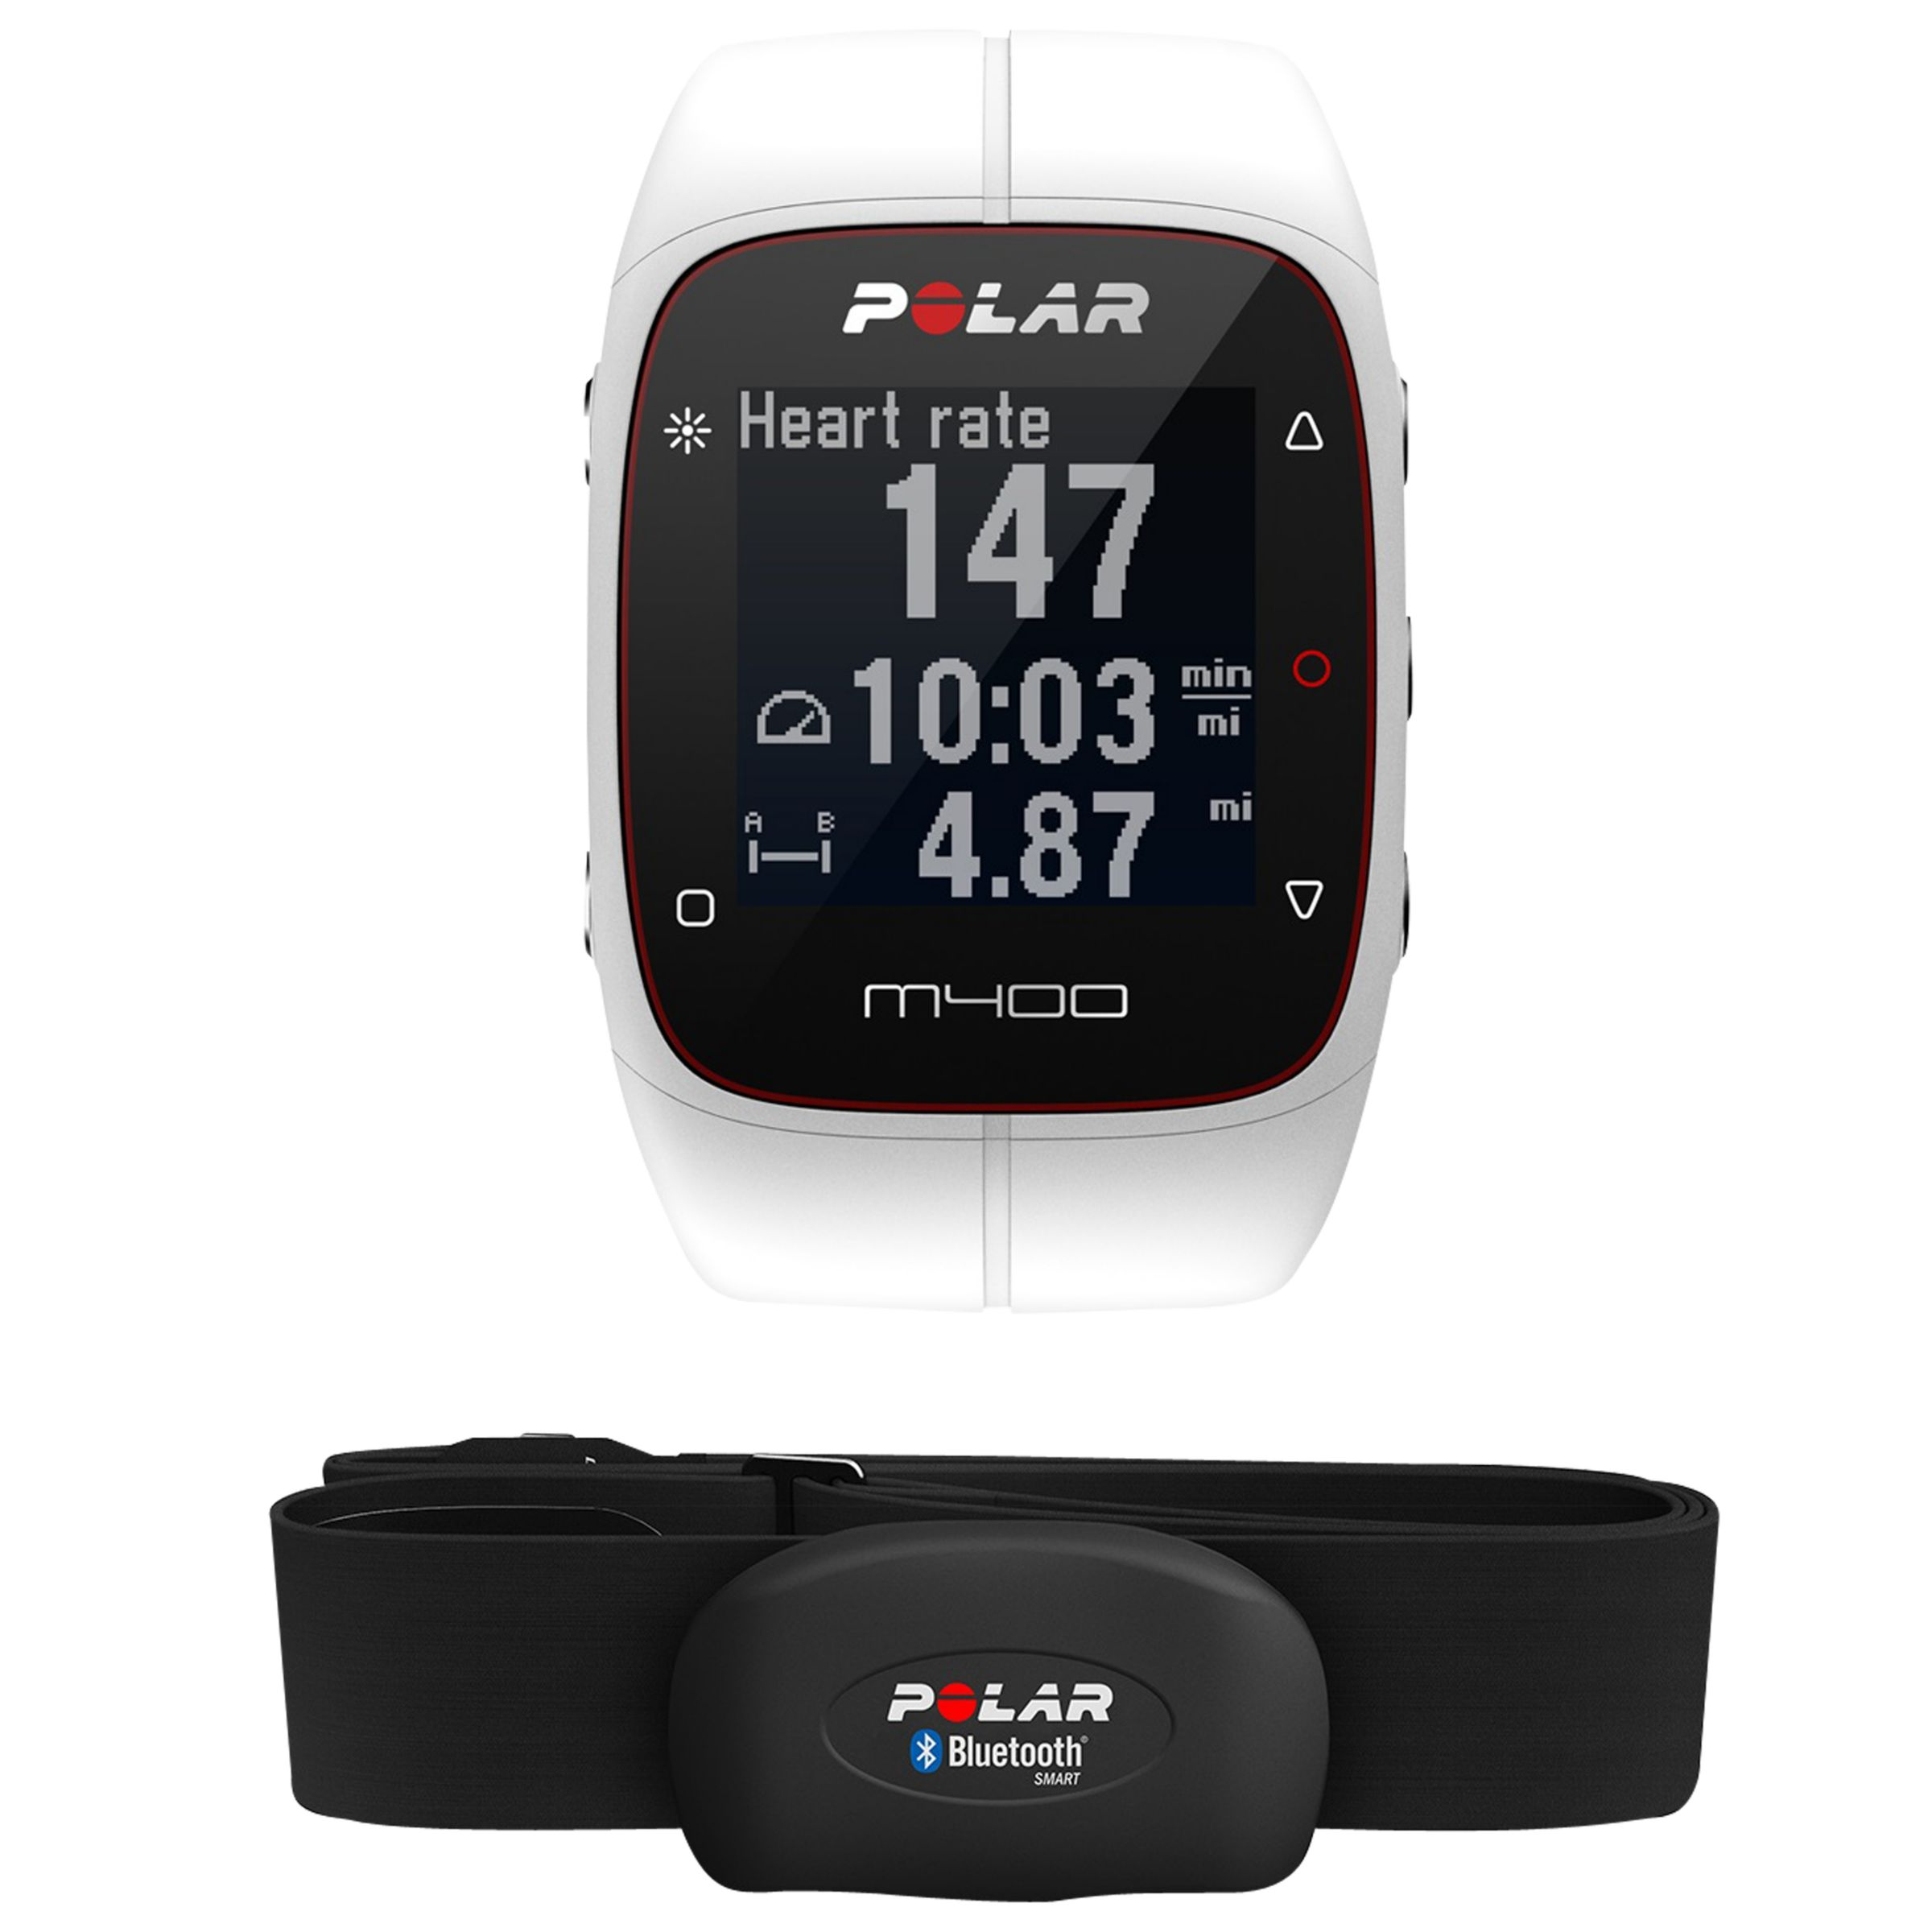 Polar heart rate monitor software for mac free